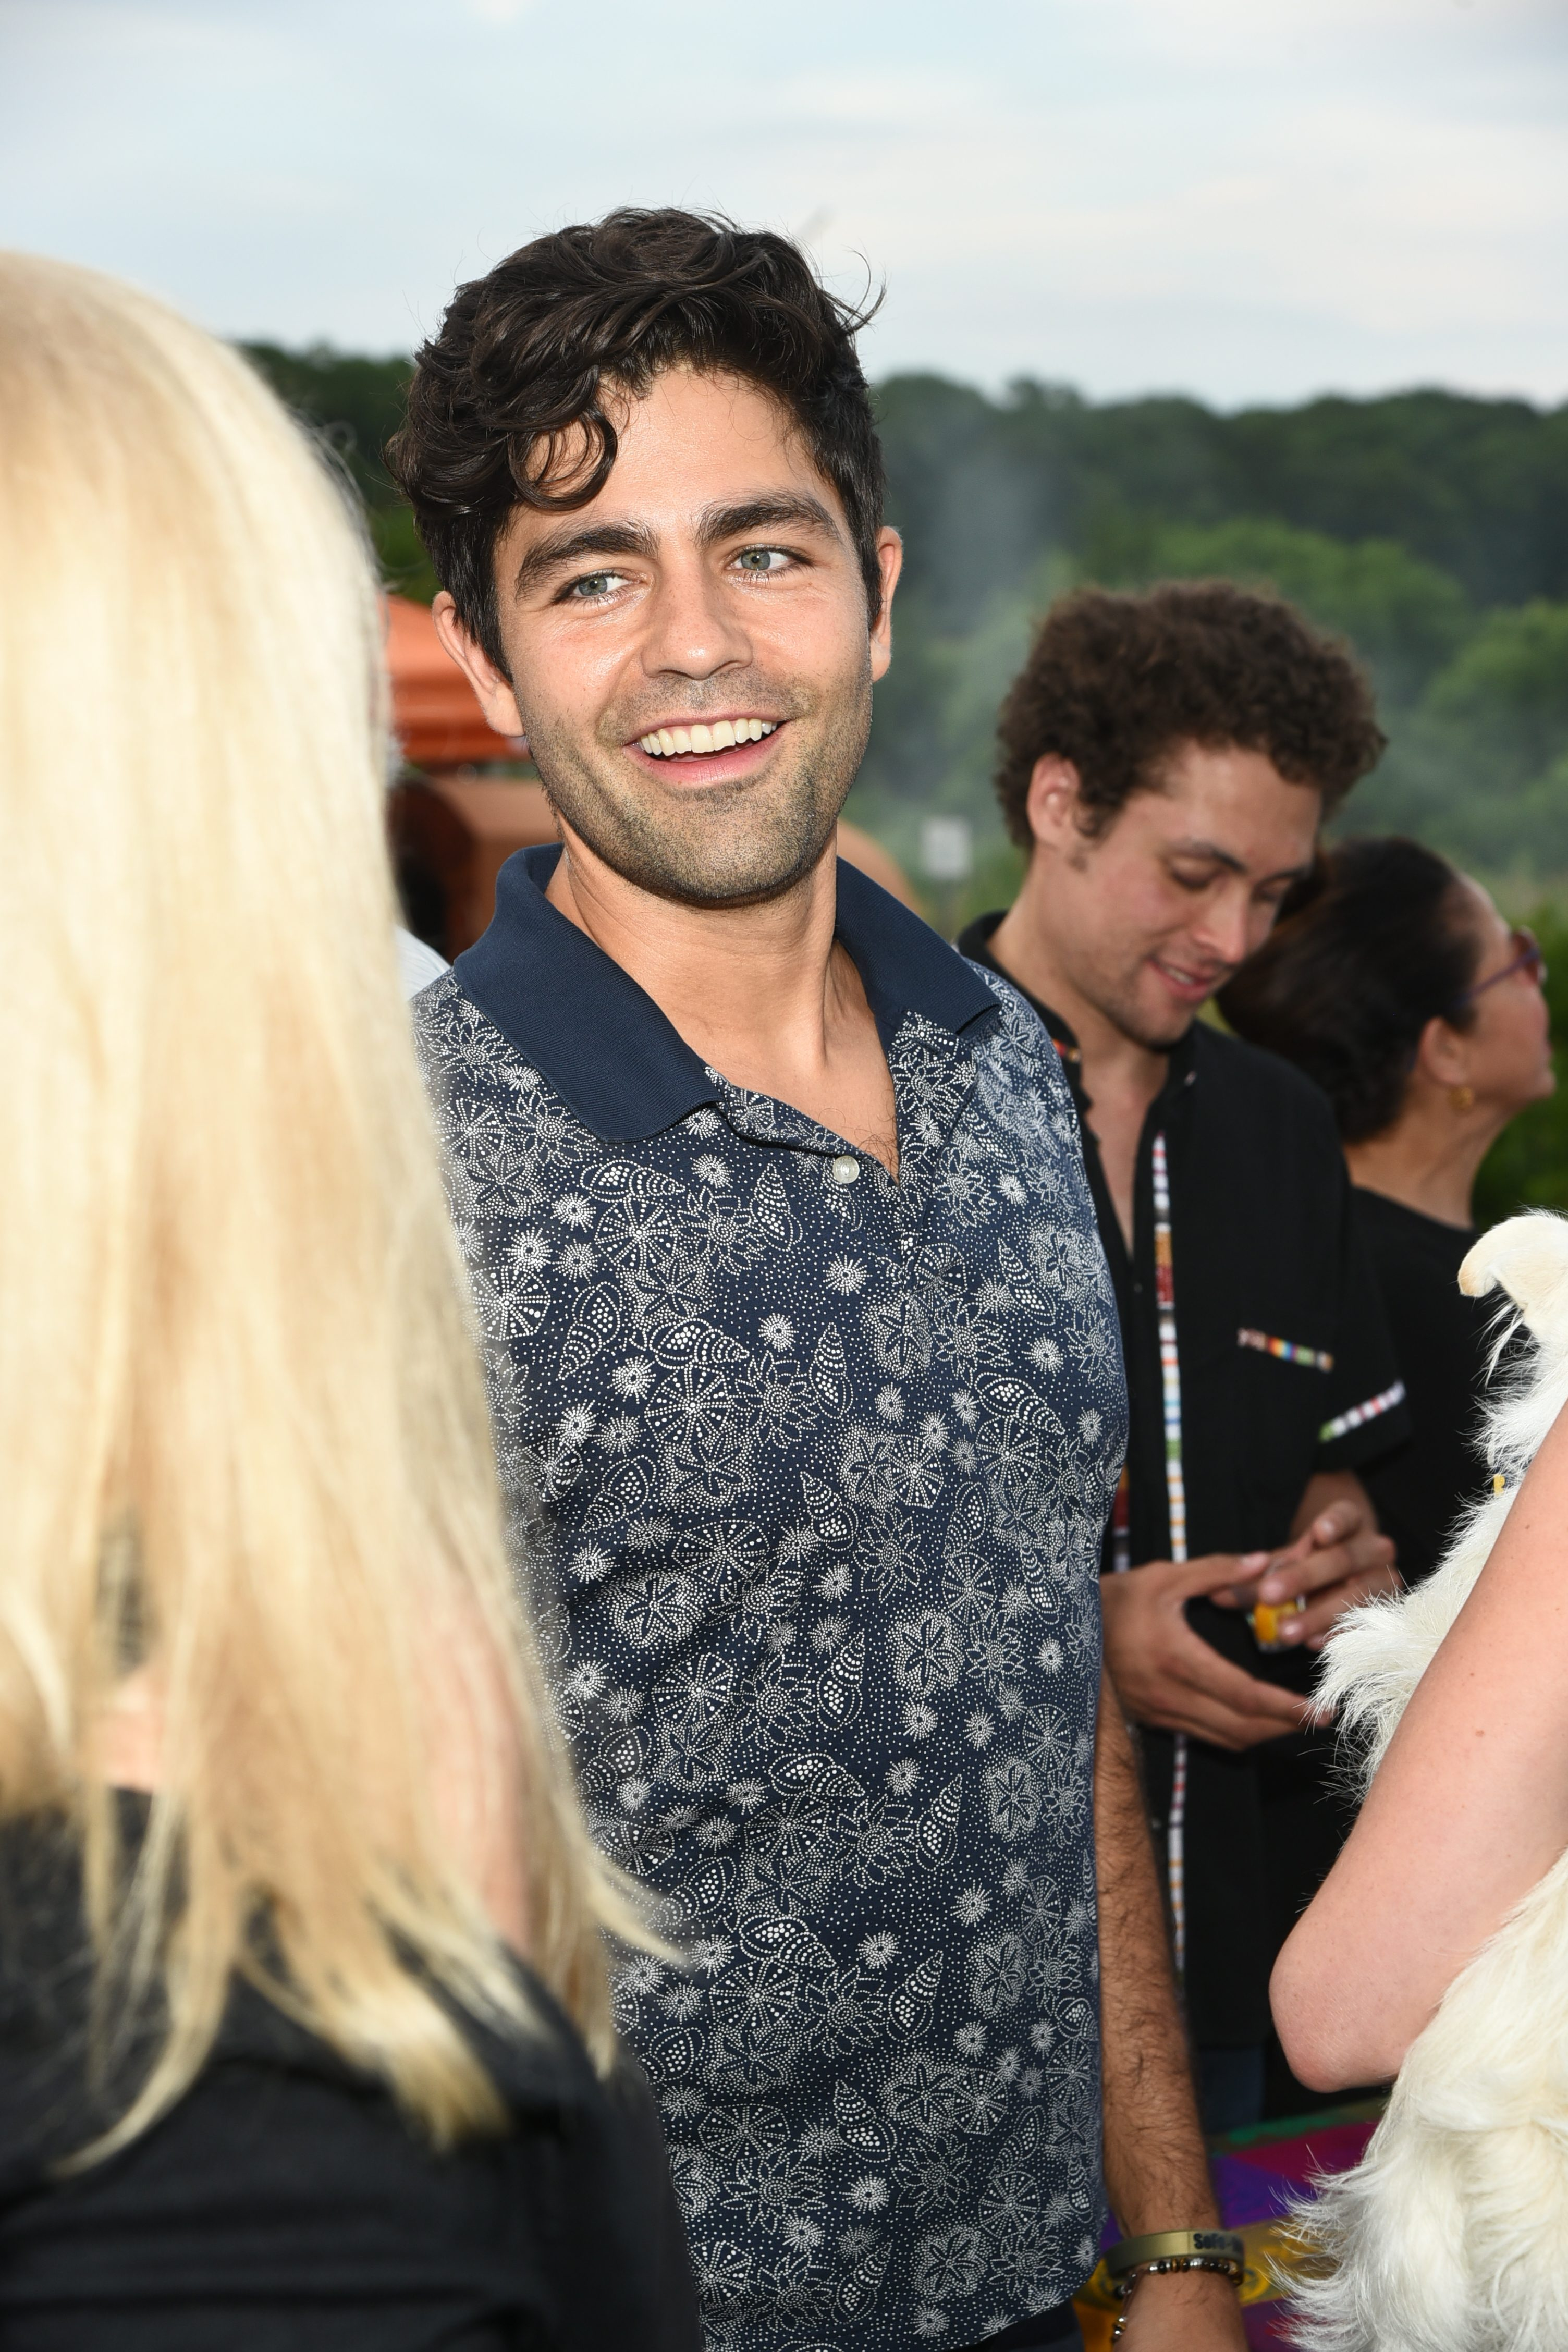 5 – Adrian Grenier attends the 28th.Annual SOFO Summer Gala at the South Fork Natural History Museum in Bridgehampton on Saturday, July 8, 2017. photo by Rob Rich-SocietyAllure.com